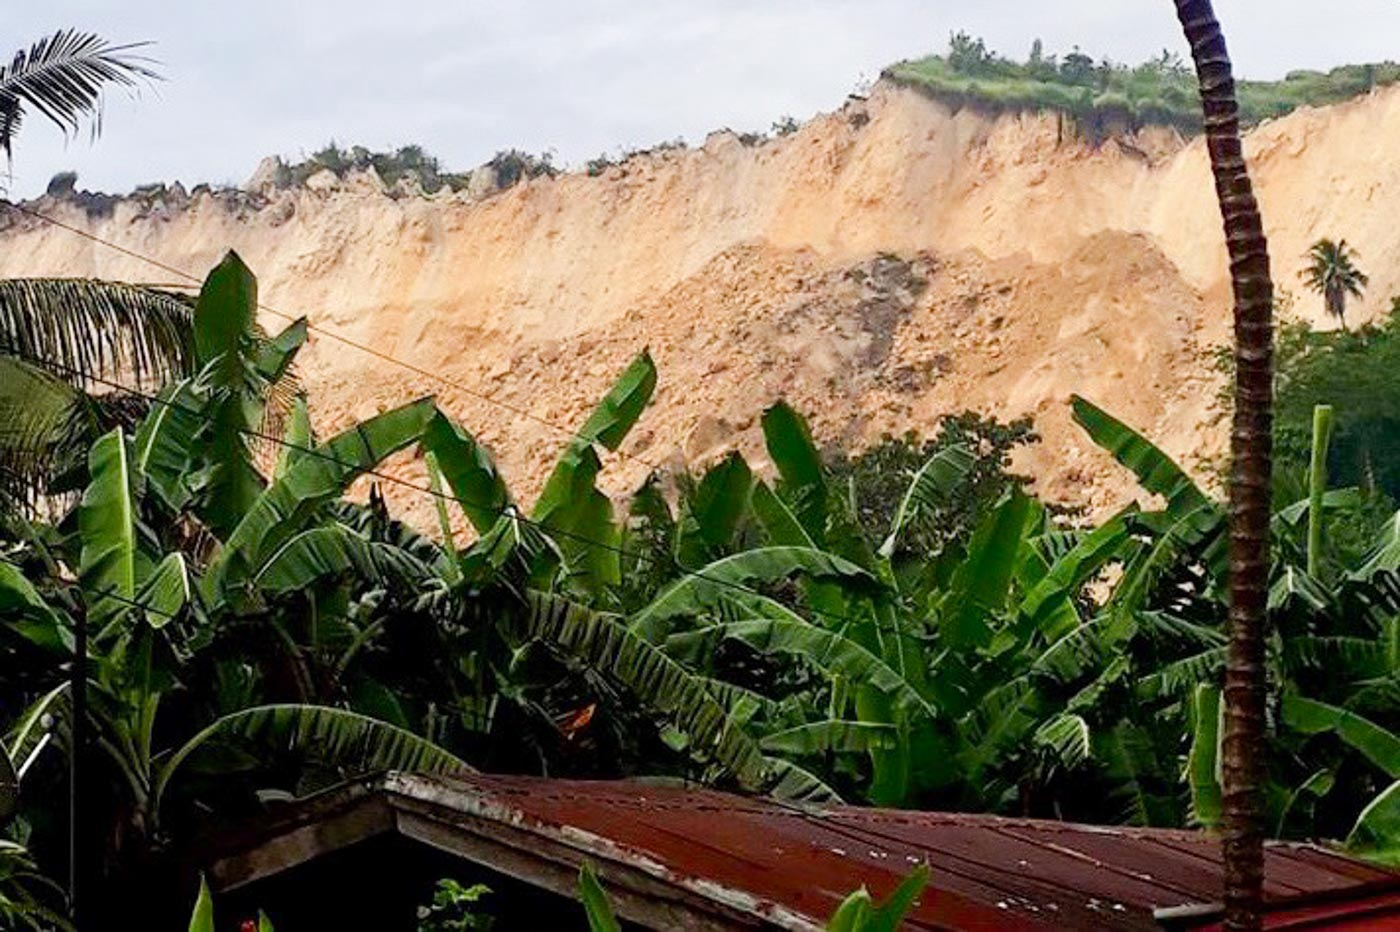 DISASTER. A landslide hits a village in Naga City, Cebu. Initial reports say the landslide buried dozens of homes and killed at least 3 people. Photo by John Rhay Echavez